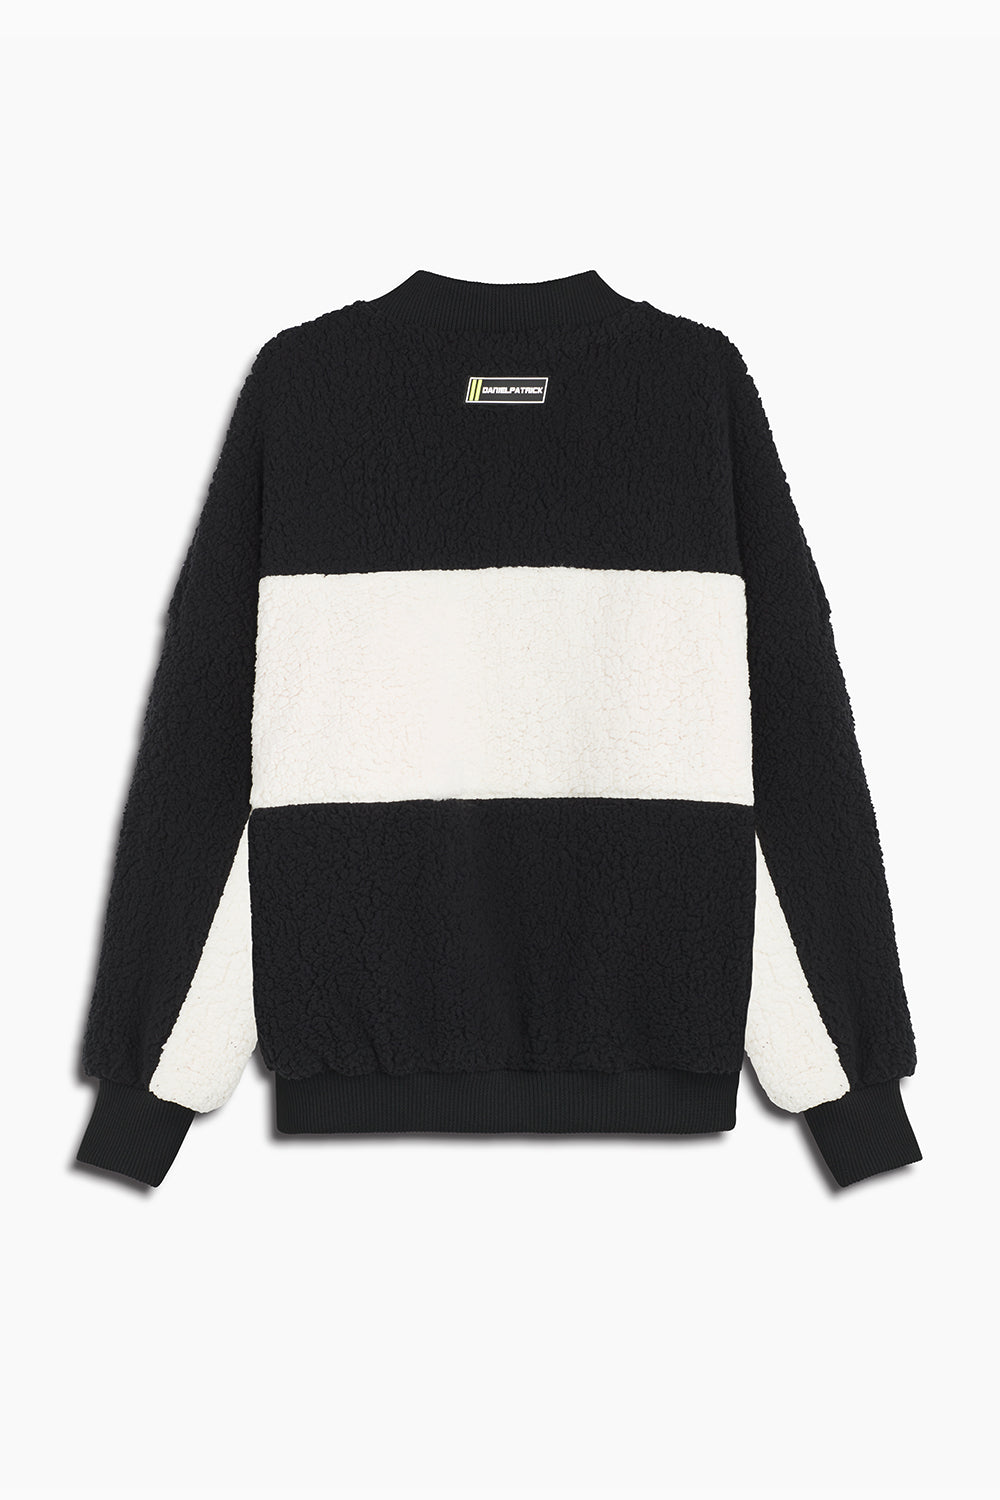 panel sherpa bomber jacket in black/ivory by daniel patrick